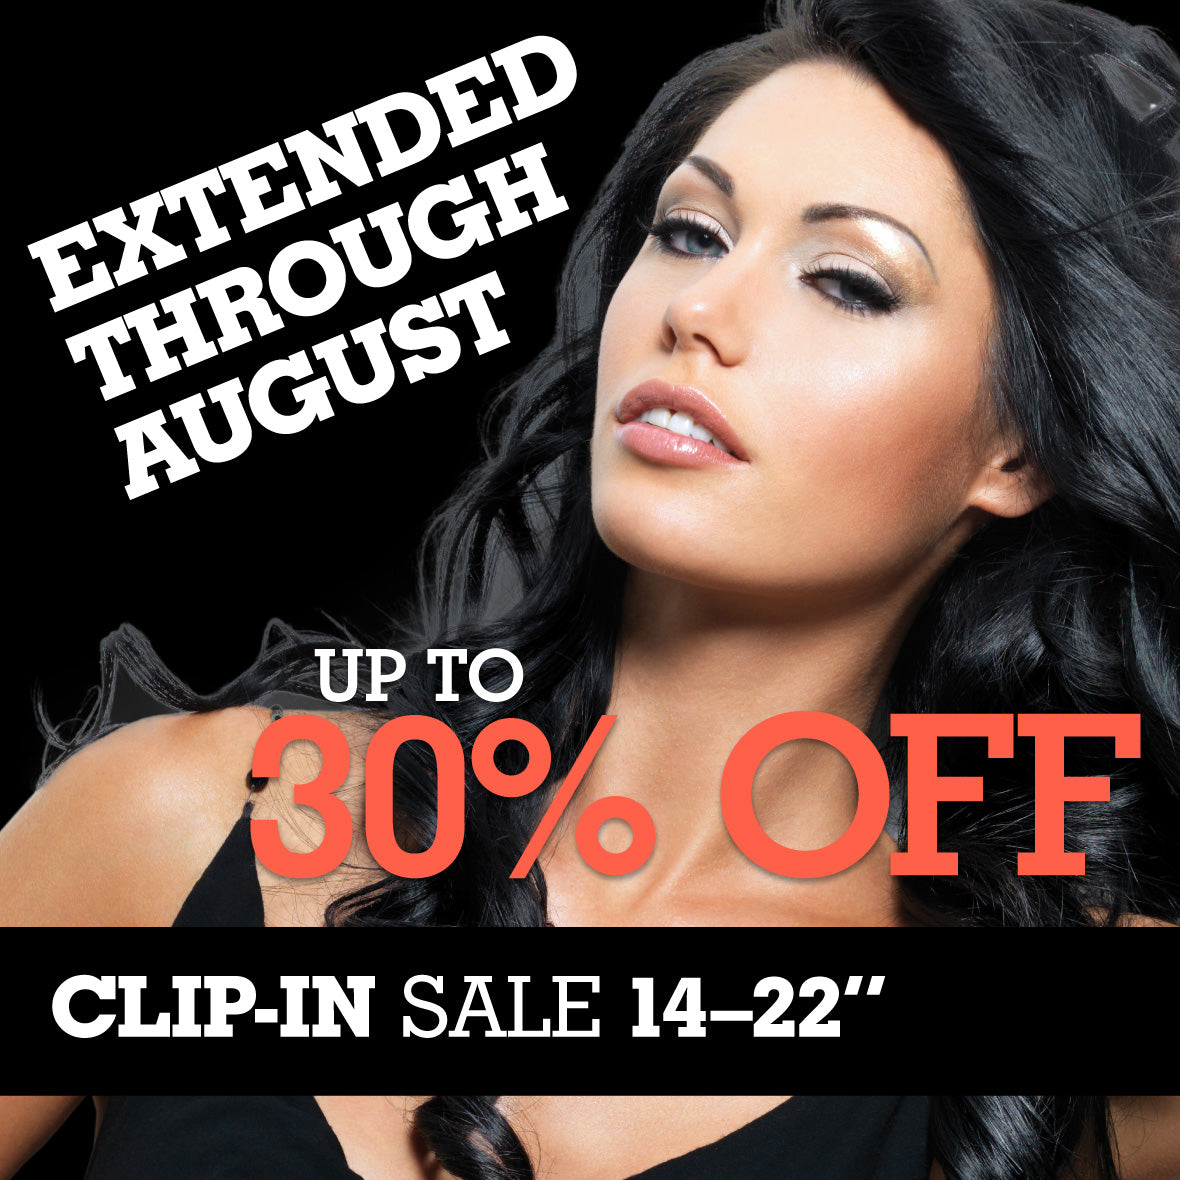 July Clip-in Sale. Save up to 30%